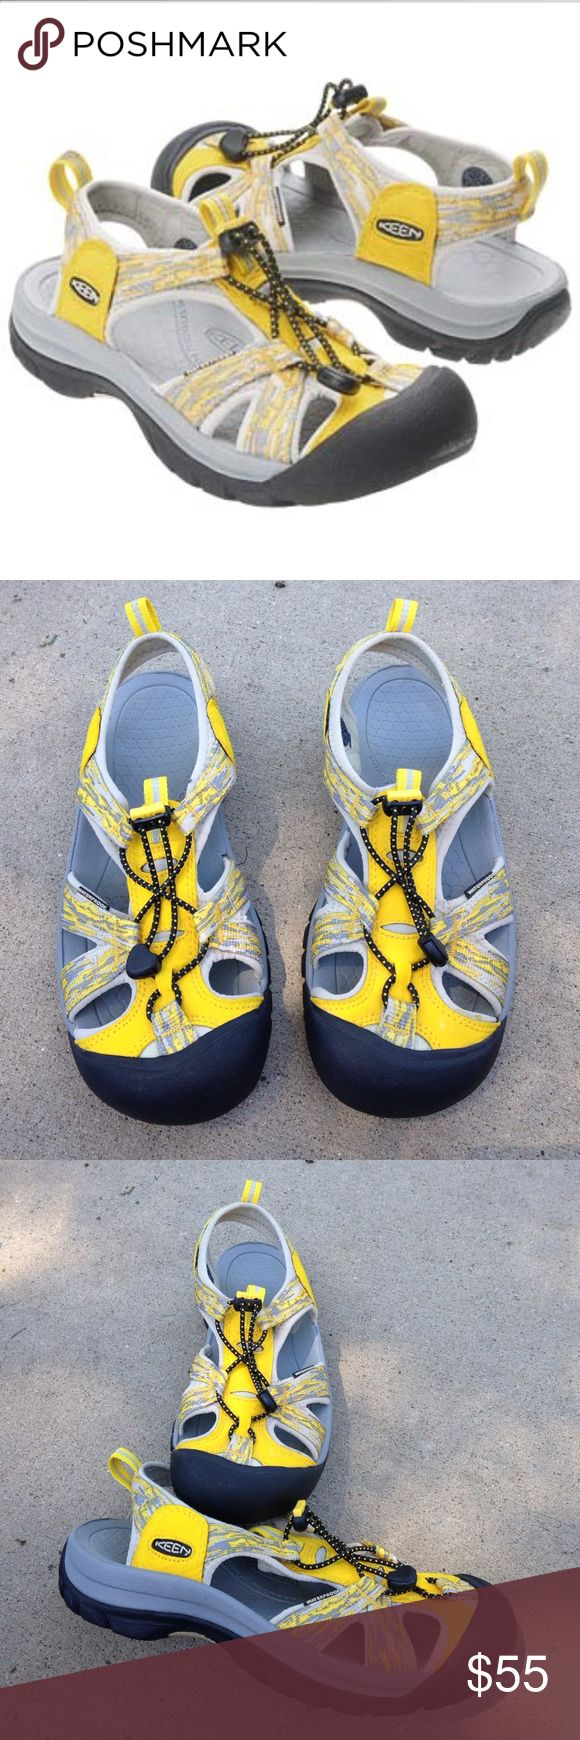 """Women's Keen Venice H2 Sandals Awesome women's Keen """"Yamhill Yellow"""" Venice H2 waterproof sandal/shoe. Worn only once or twice they are in great condition! Size 9 Keen Shoes"""